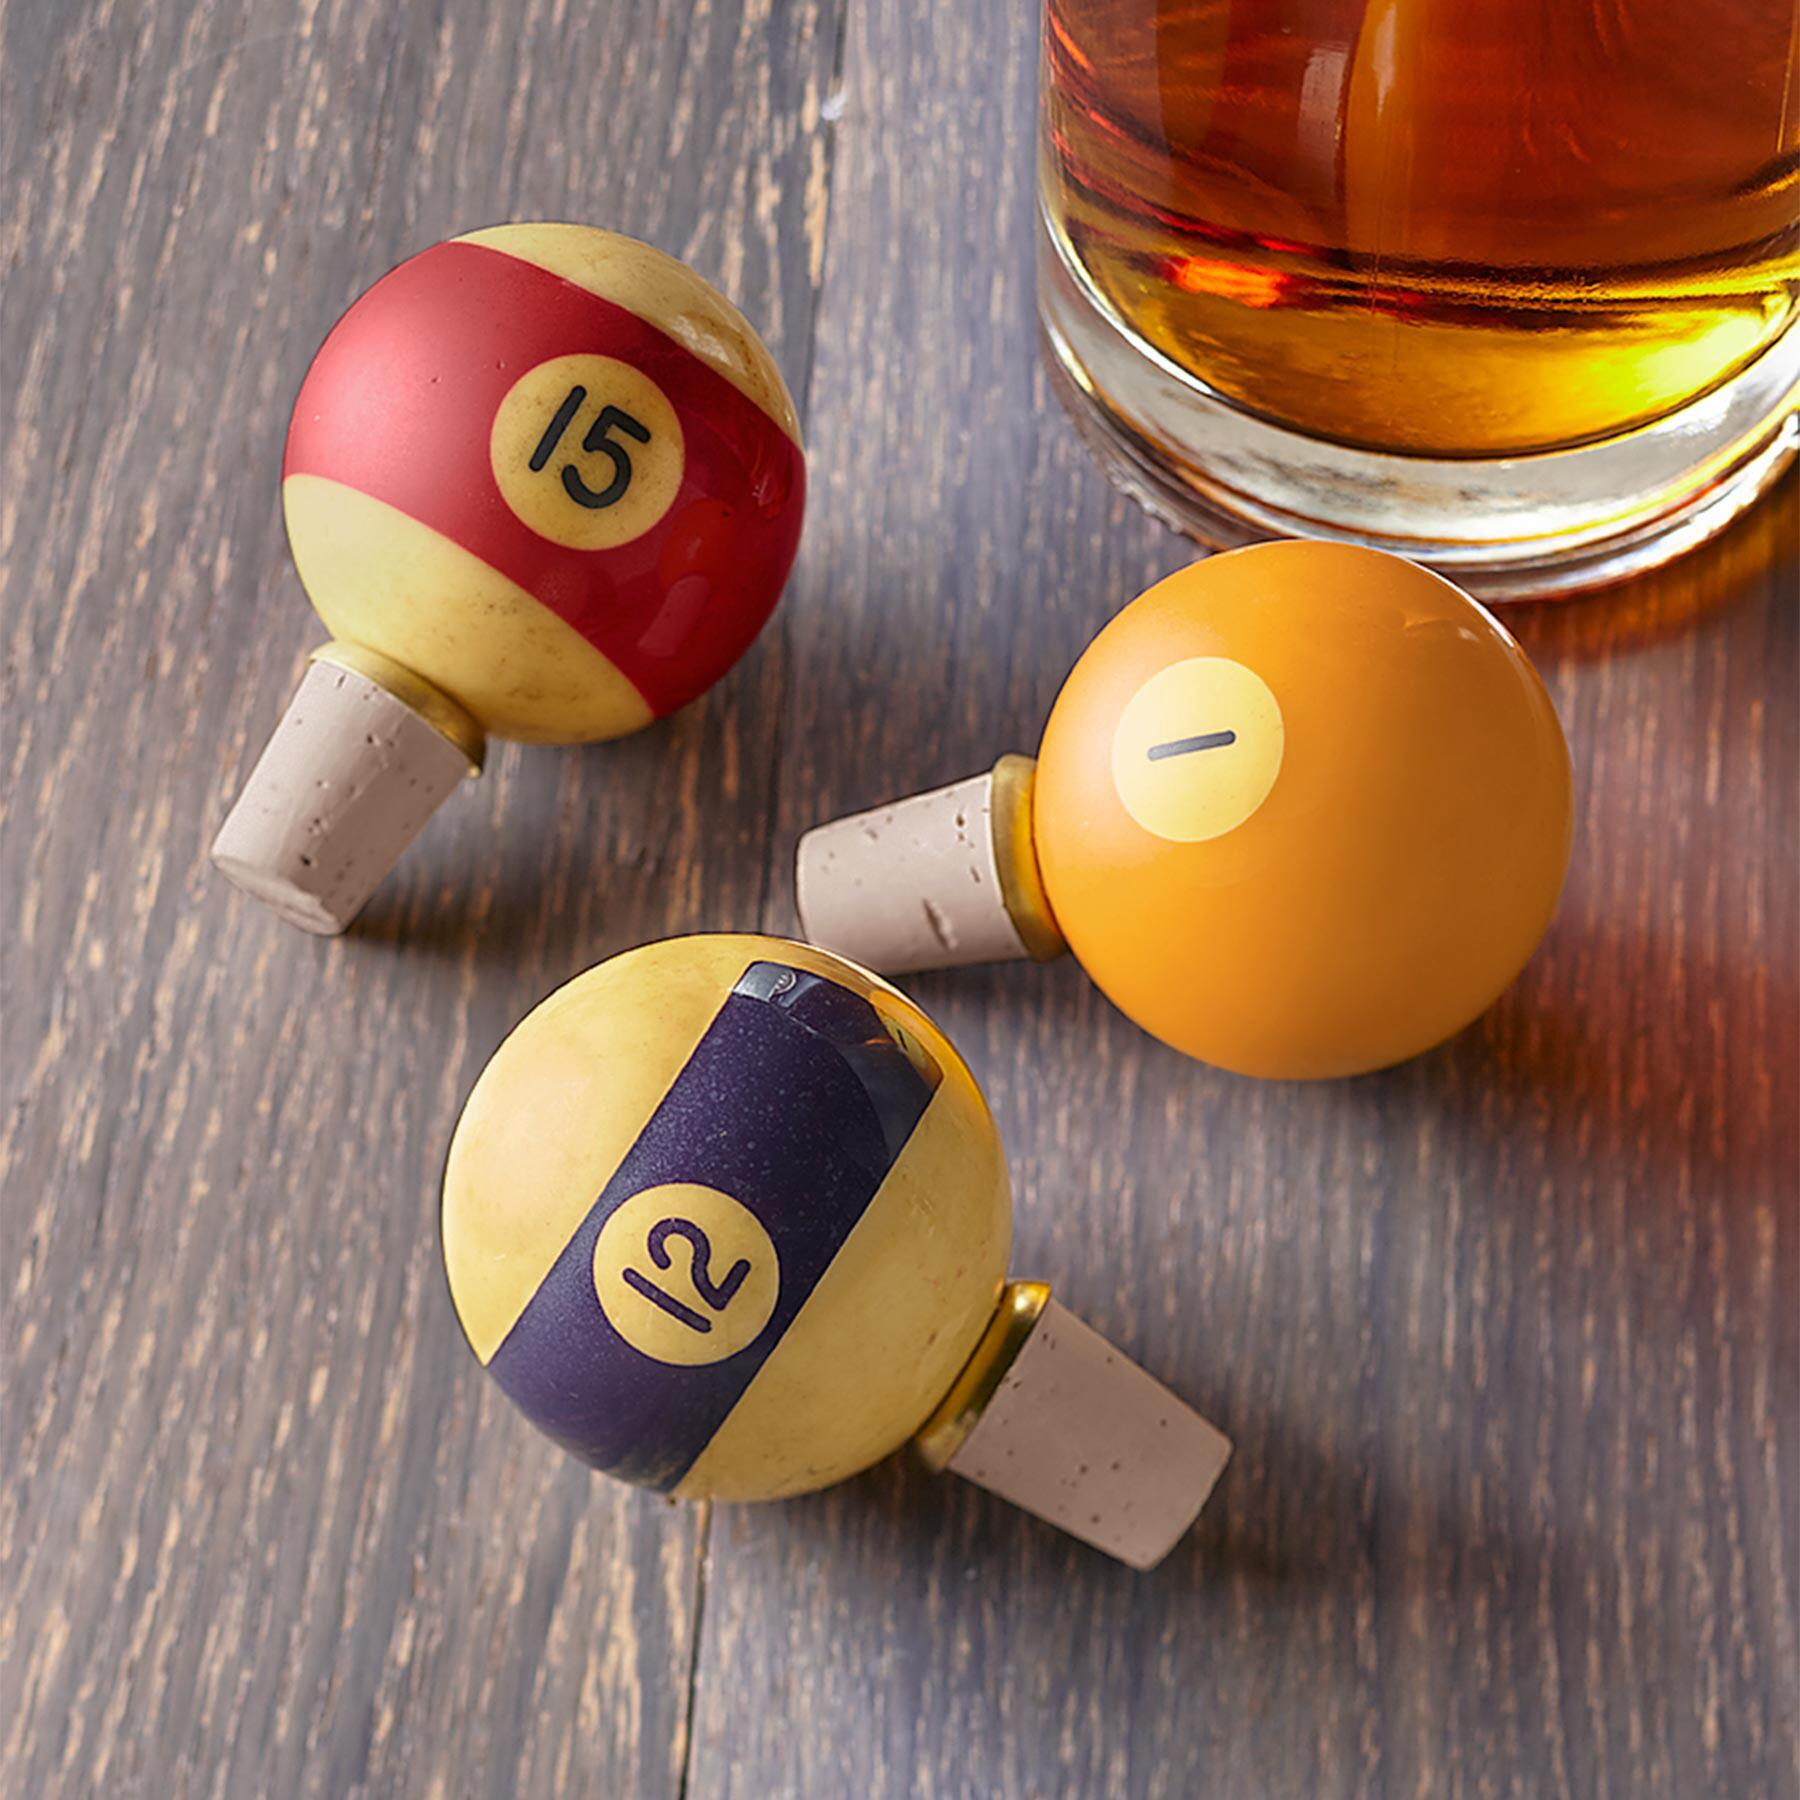 BILLIARD BALL STOPPERS: View 1